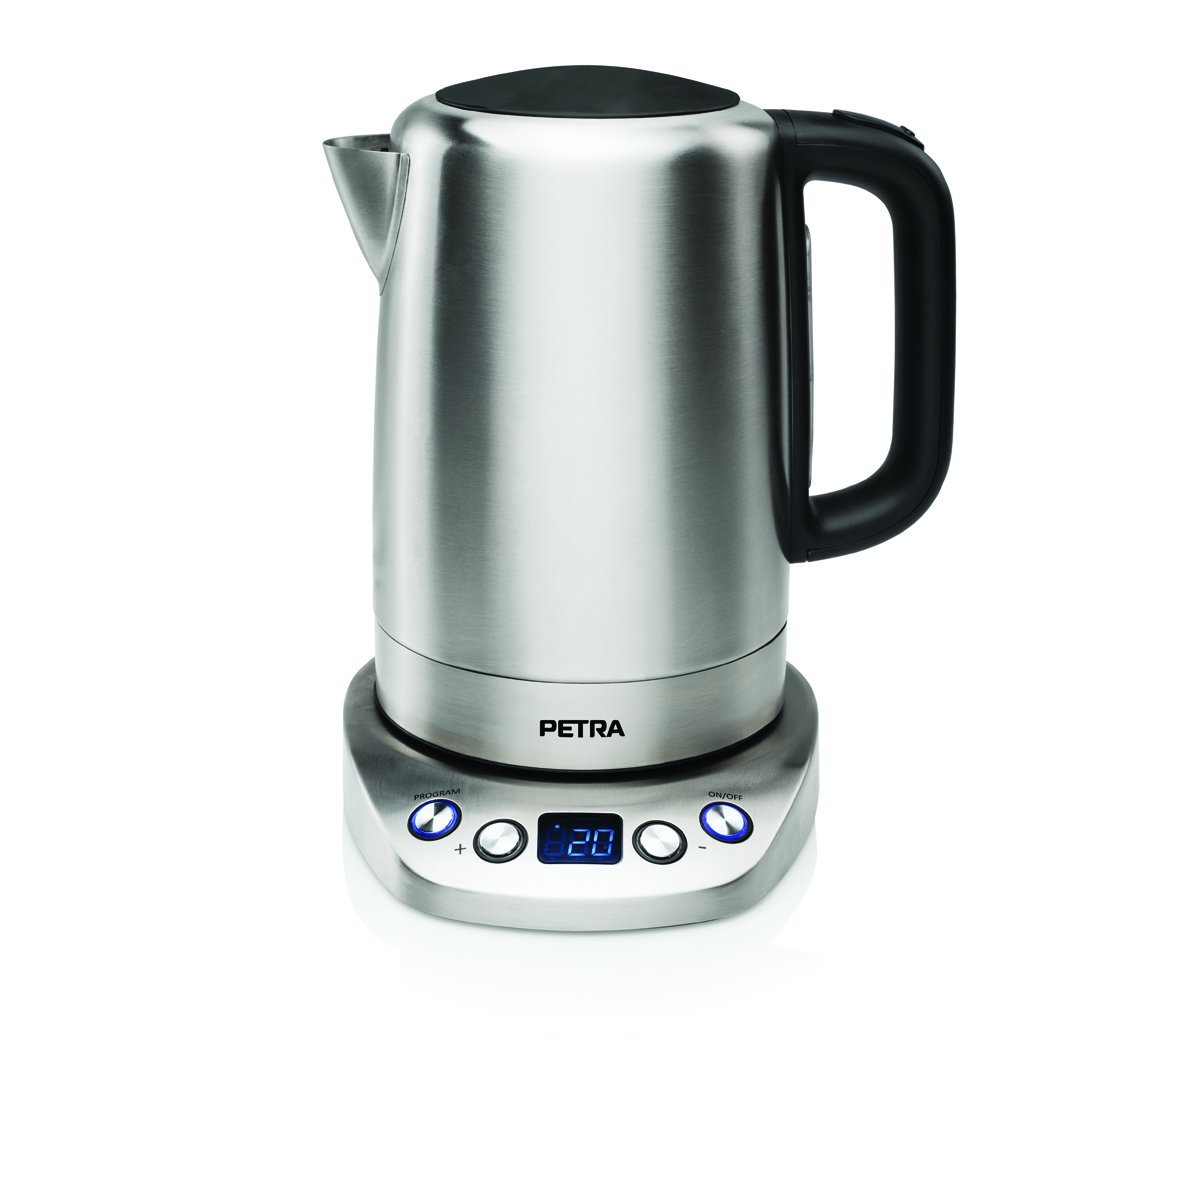 Petra Electric WK 54.35 Thermostat Kettle 1,7 l, Control Digital, 1850 W, 1.7 litros, Acero Inoxidable, Plateado: Amazon.es: Hogar